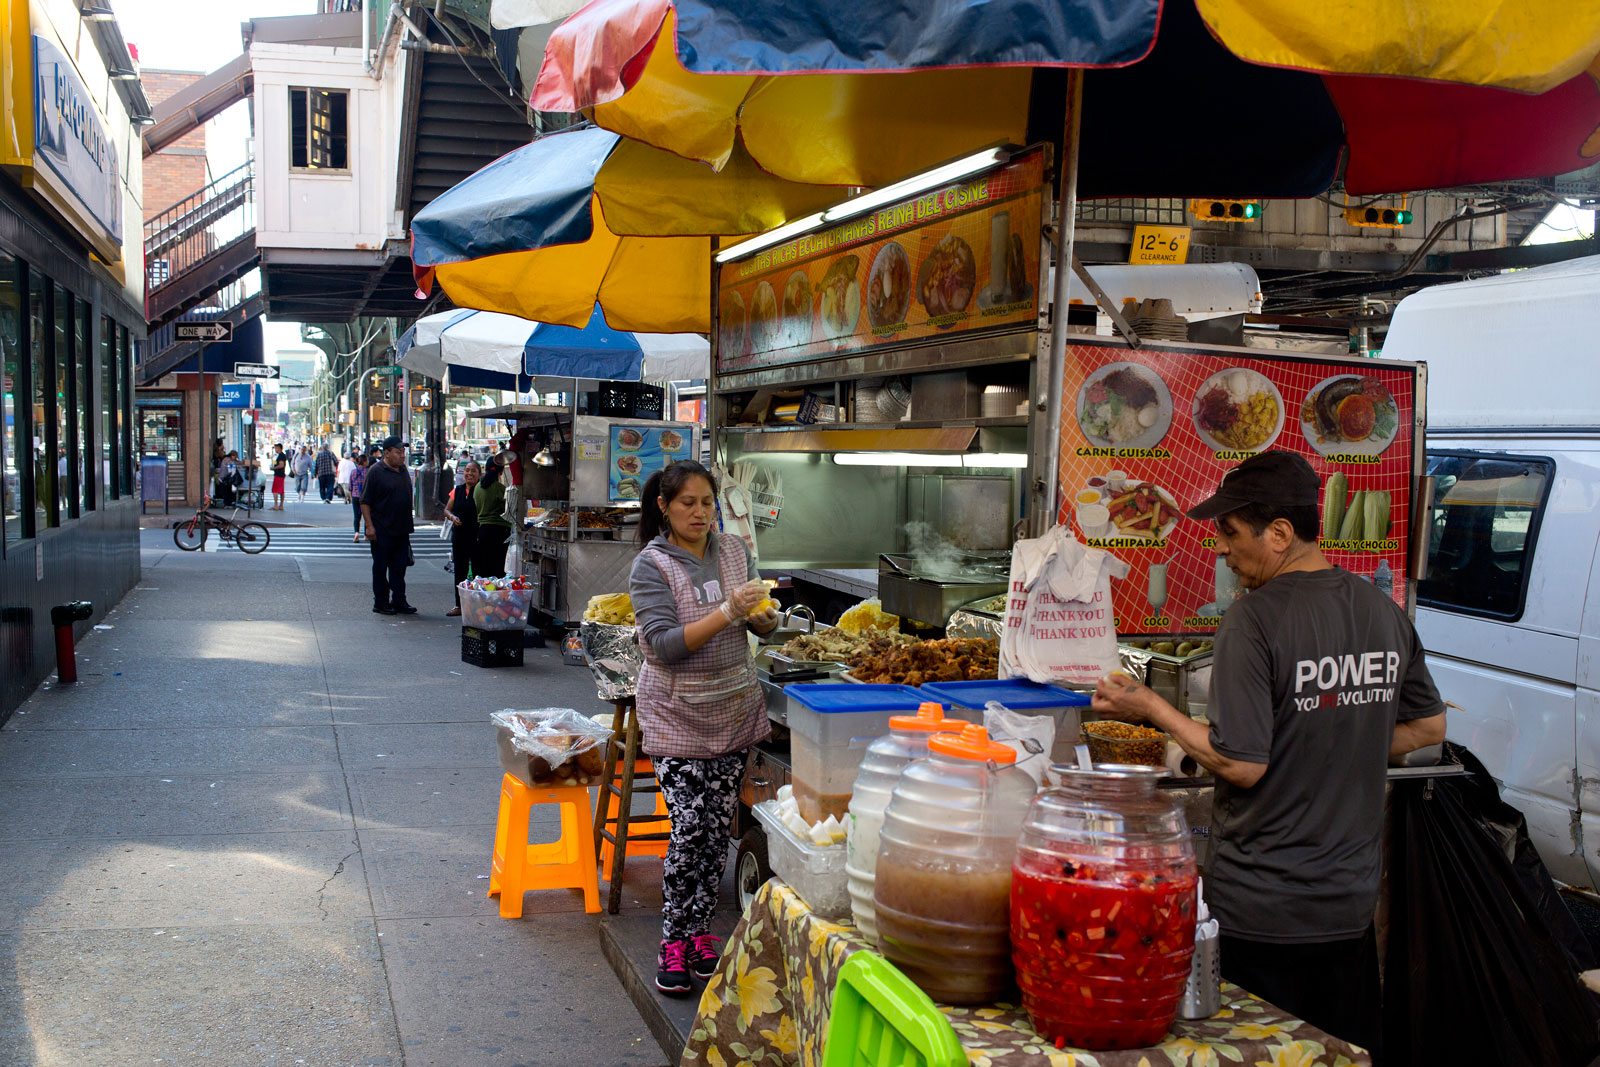 Two people selling food and drink from a cart on the side of a busy street